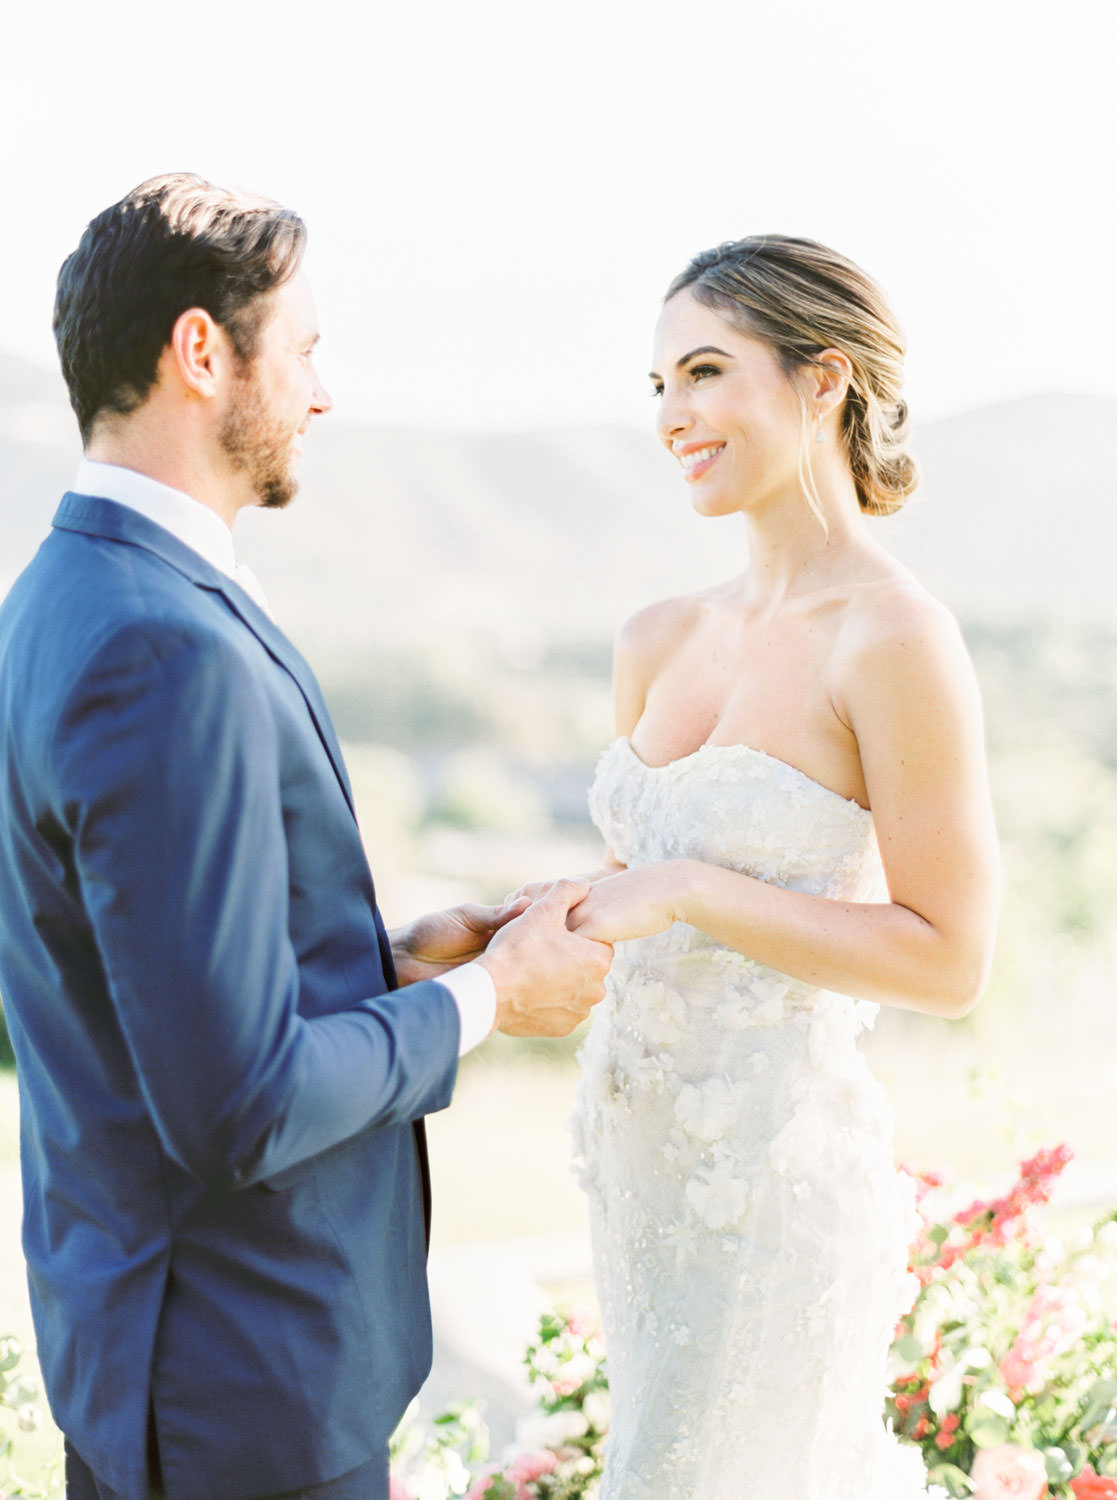 Bride in Marchesa and groom for ceremony, Ceremony semi circle floral arrangement with greenery and pink flowers, Whispering Rose Ranch wedding shot on film, Cavin Elizabeth Photography